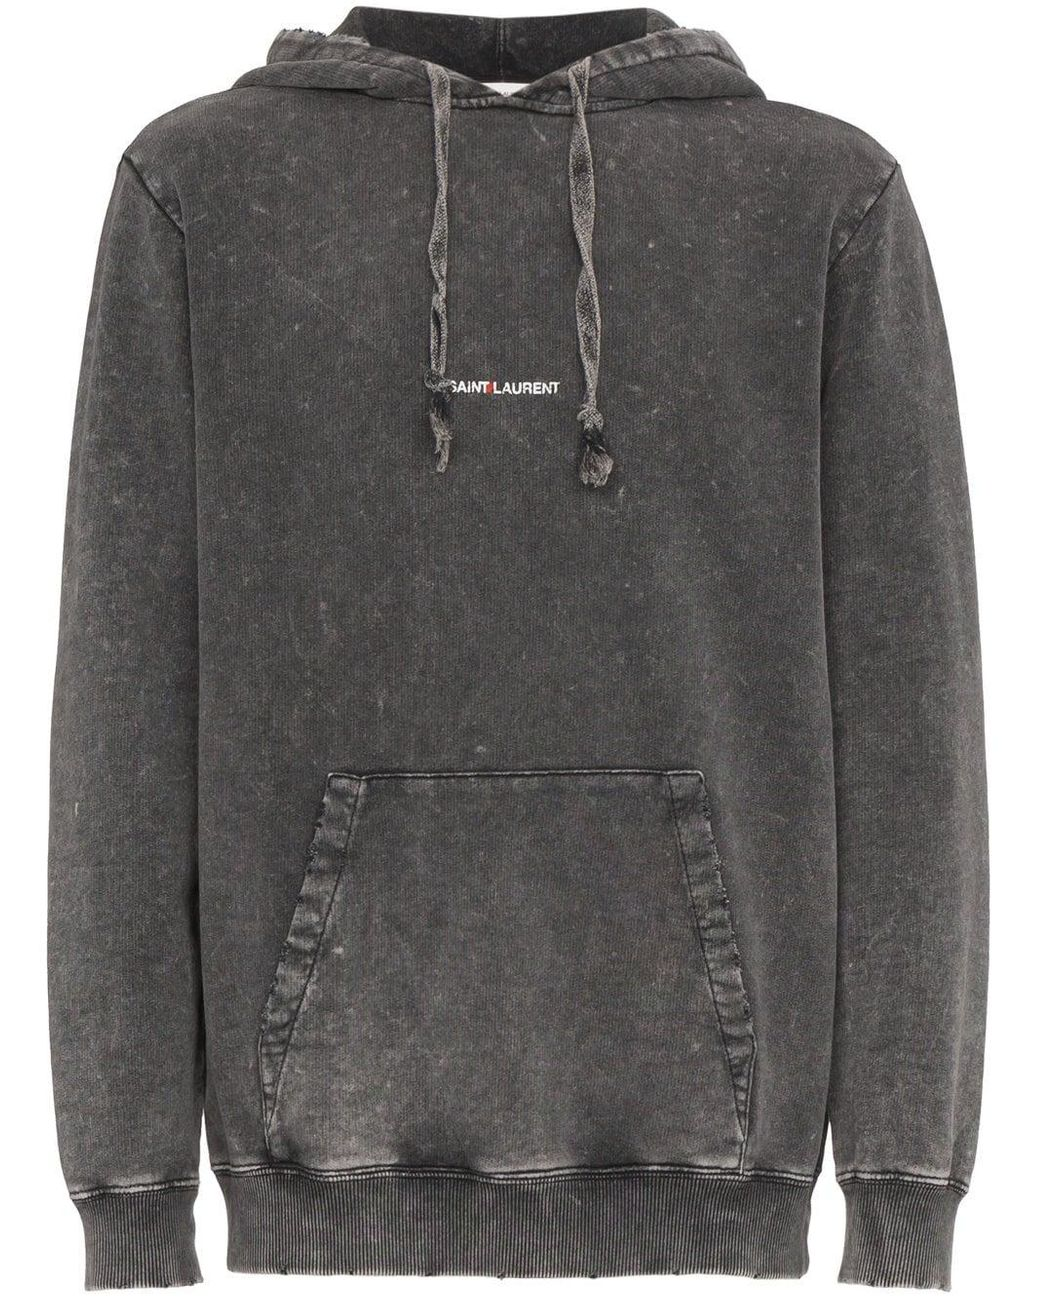 674ad2ab550 Saint Laurent Distressed Logo Hoodie in Gray for Men - Save 62% - Lyst